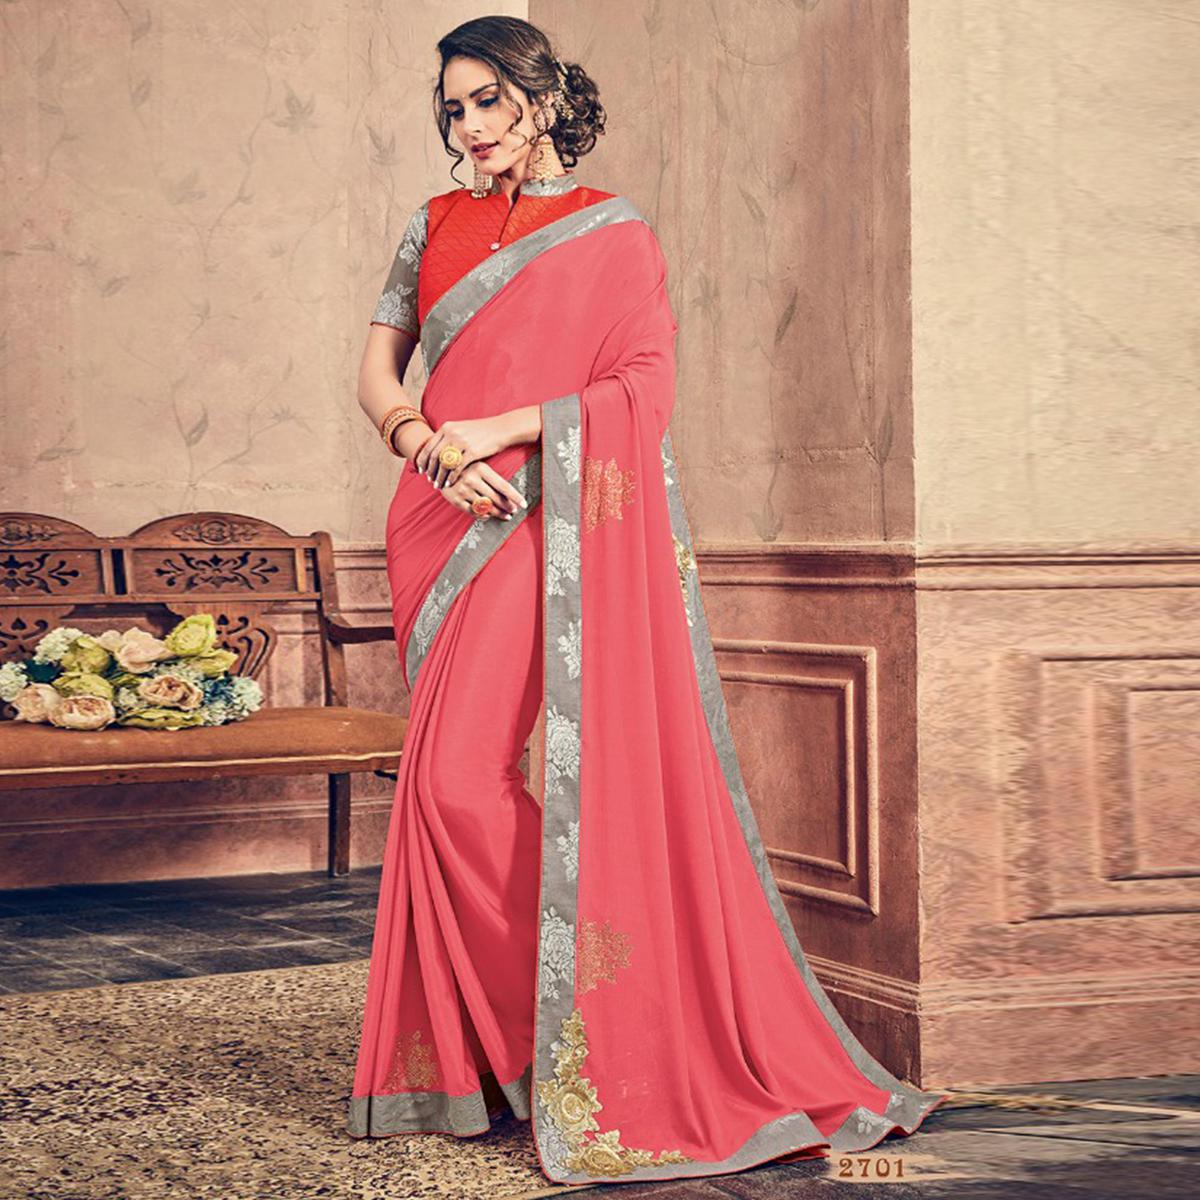 Desirable Pink & Grey Colored Party Wear Embroidered Chiffon Saree